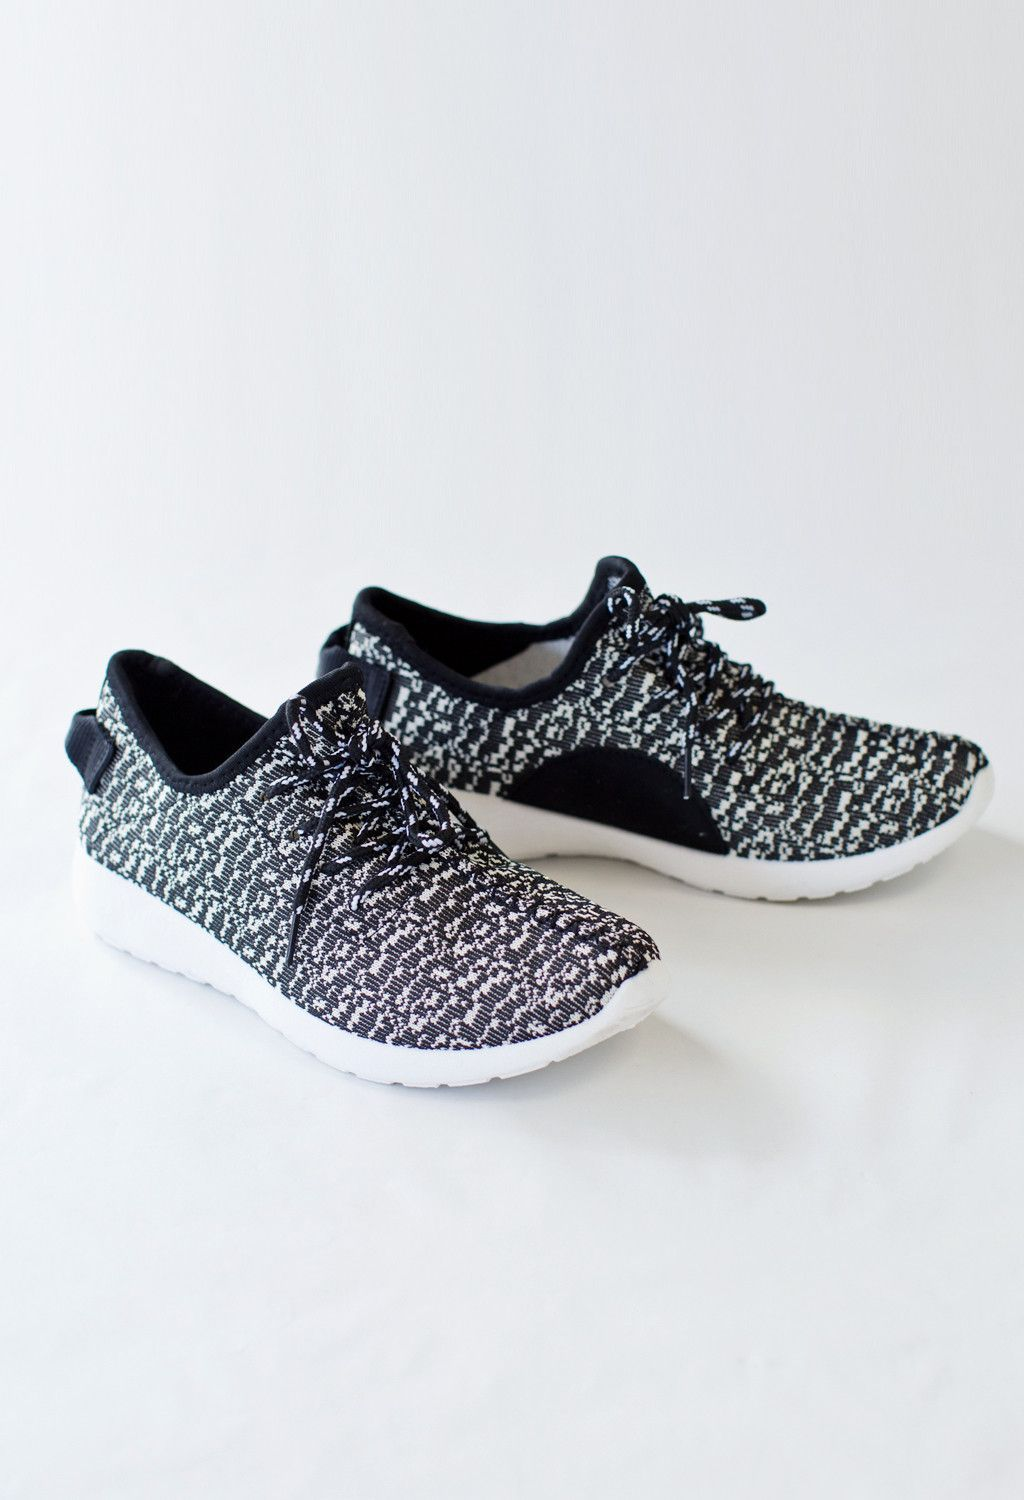 a0e0552af5b These fake yeezy tennis shoes are a must have!